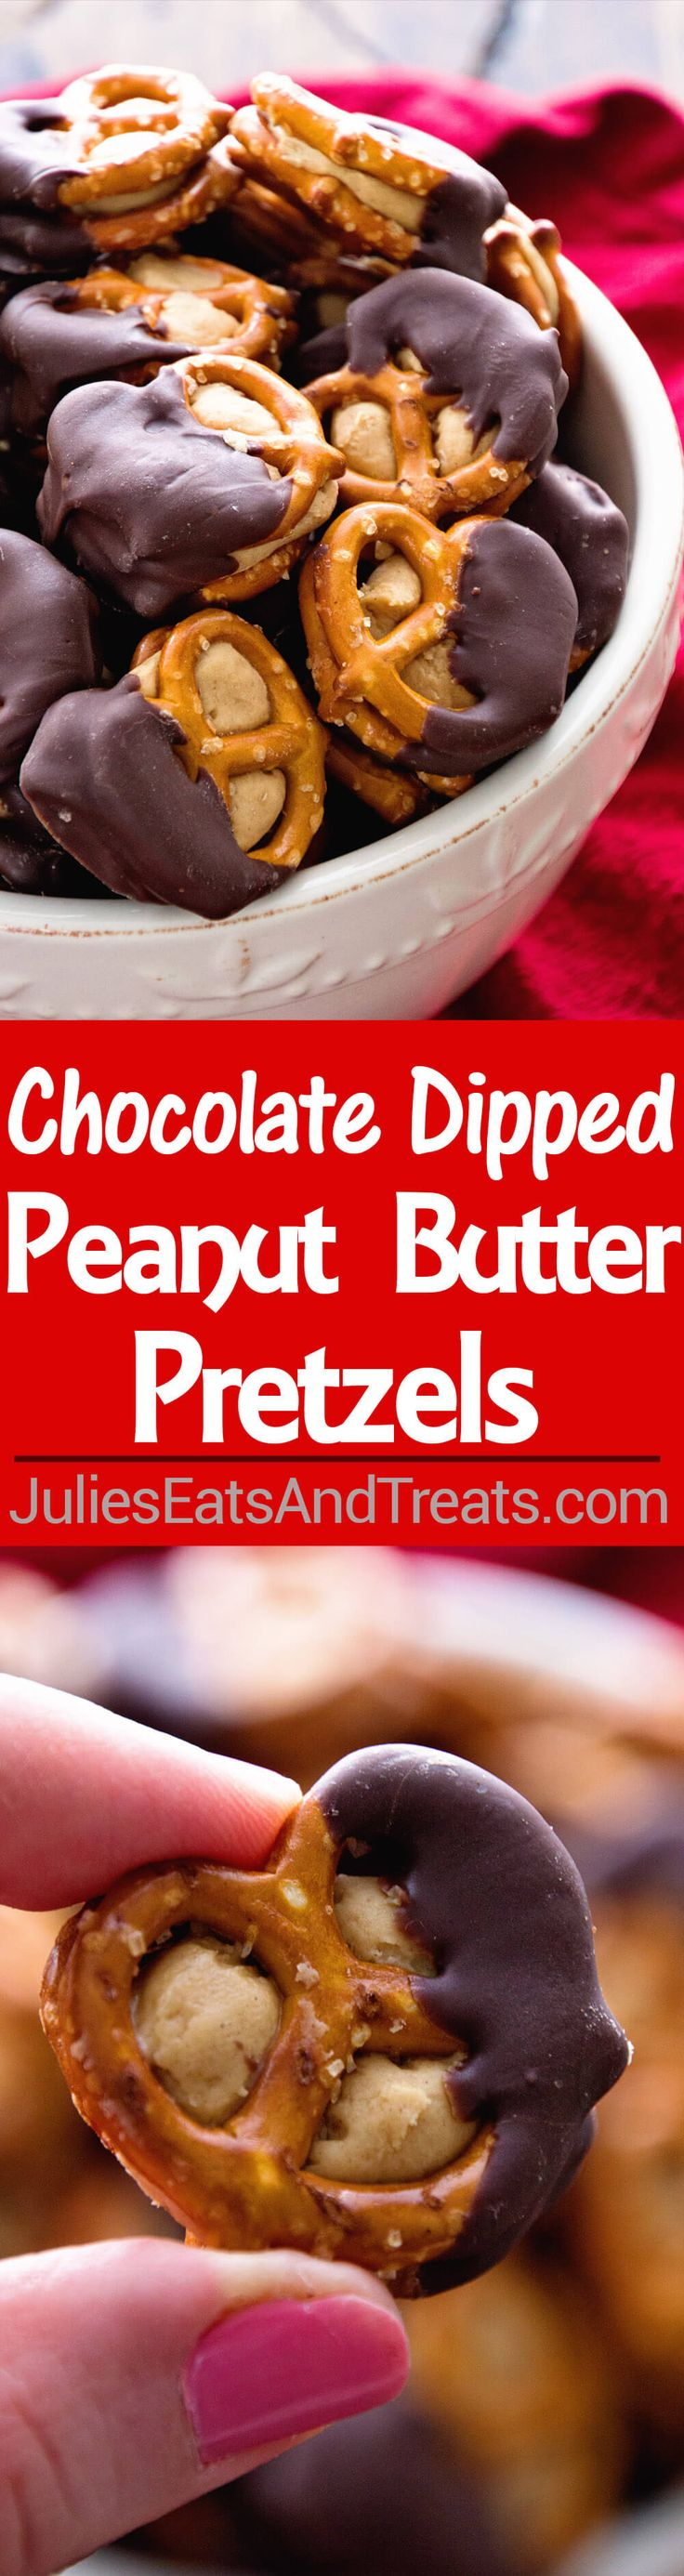 Chocolate Dipped Peanut Butter Pretzels ~ Delicious peanut butter stuffed between two pretzels and dipped in chocolate! via @julieseats